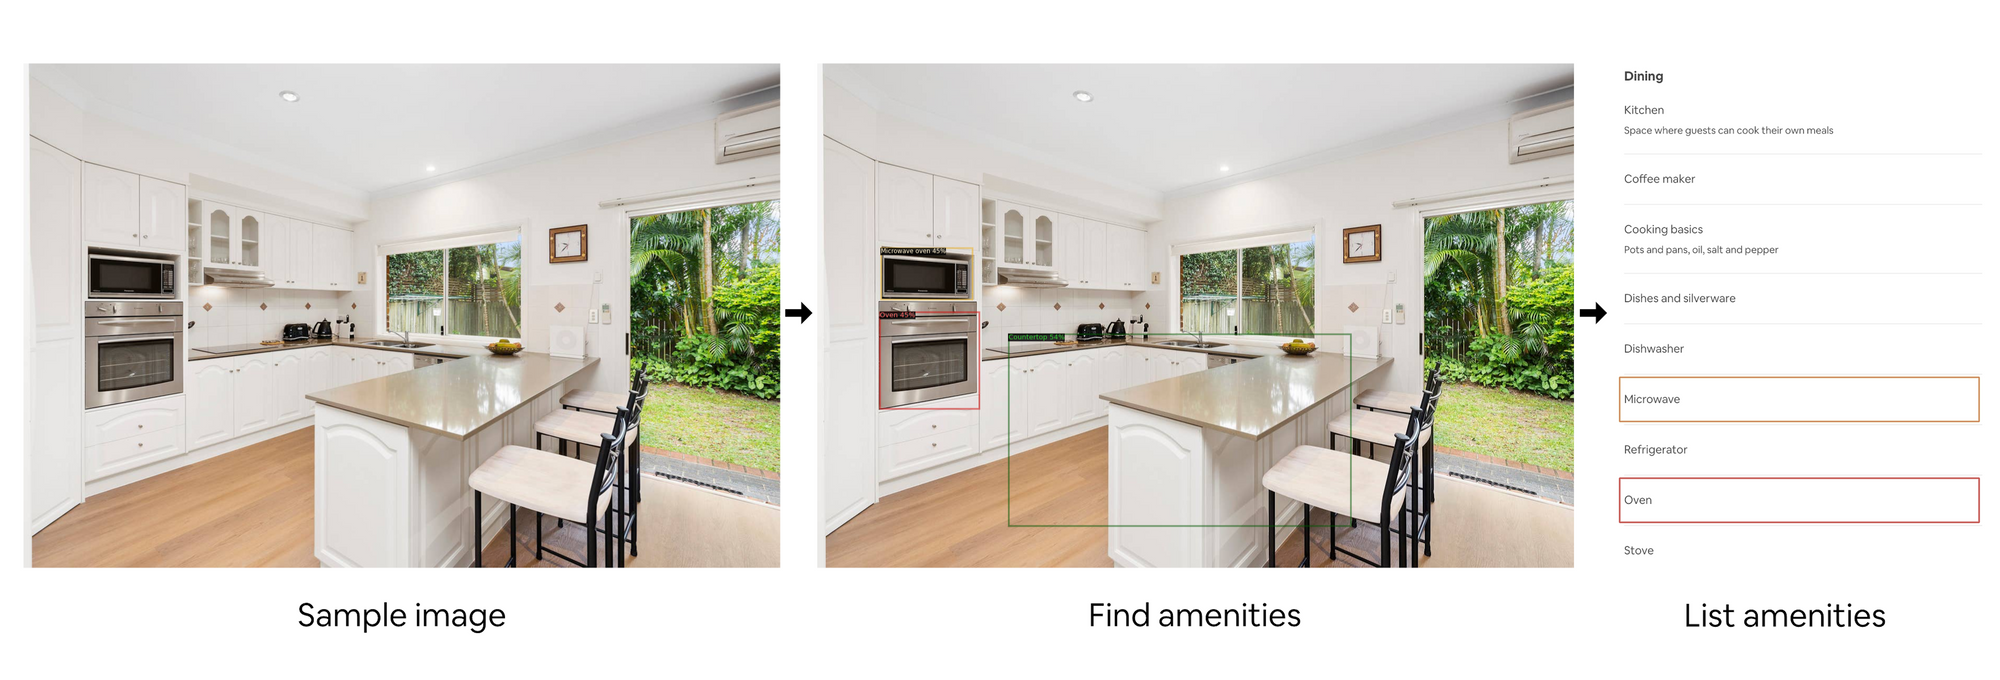 example of computer vision powered amenity detection, image of kitchen, oven and microwave found in image, oven and microwave listed in airbnb listing